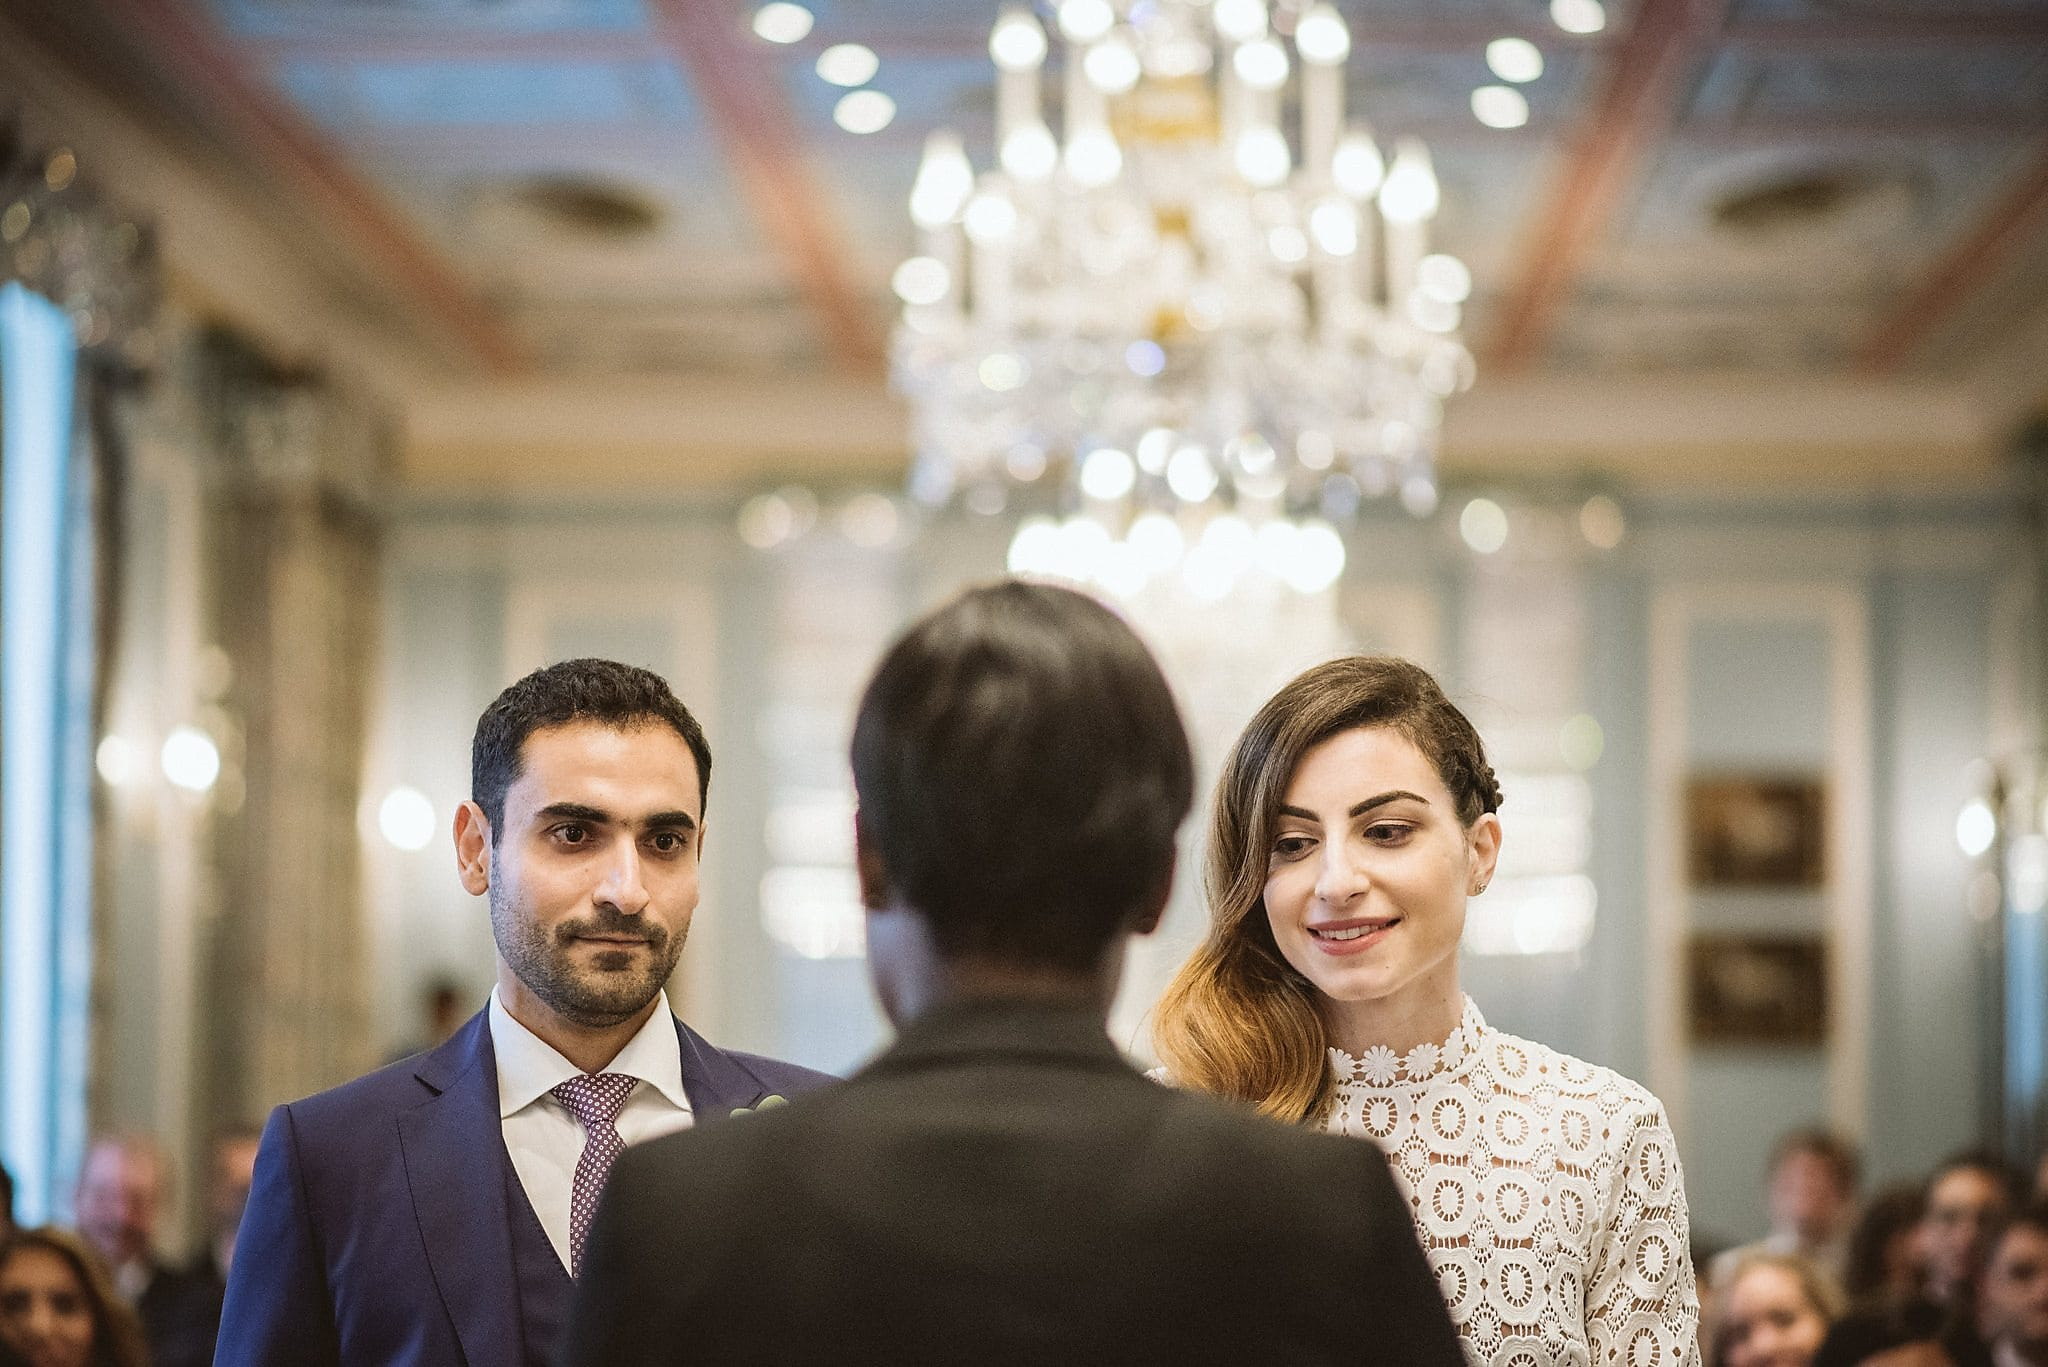 Bride and groom during their Lanesborough wedding ceremony